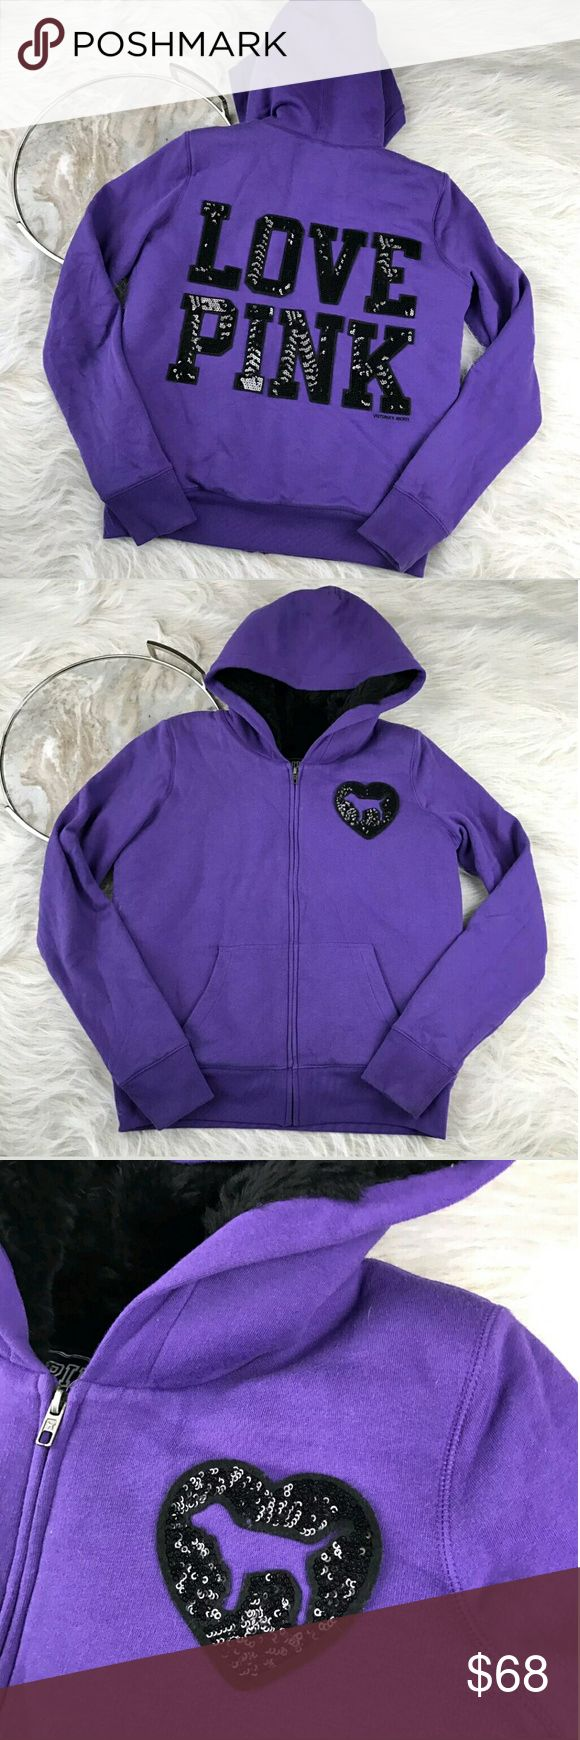 "Victoria's Secret Purple Faux Fur Hoodie Victoria's Secret PINK faux fur Lined hoodie, purple with sequin ""love pink"" on back. Women's size medium, gently used with no flaws.   Length 30""  armpit to armpit 24"" Victoria's Secret Jackets & Coats"